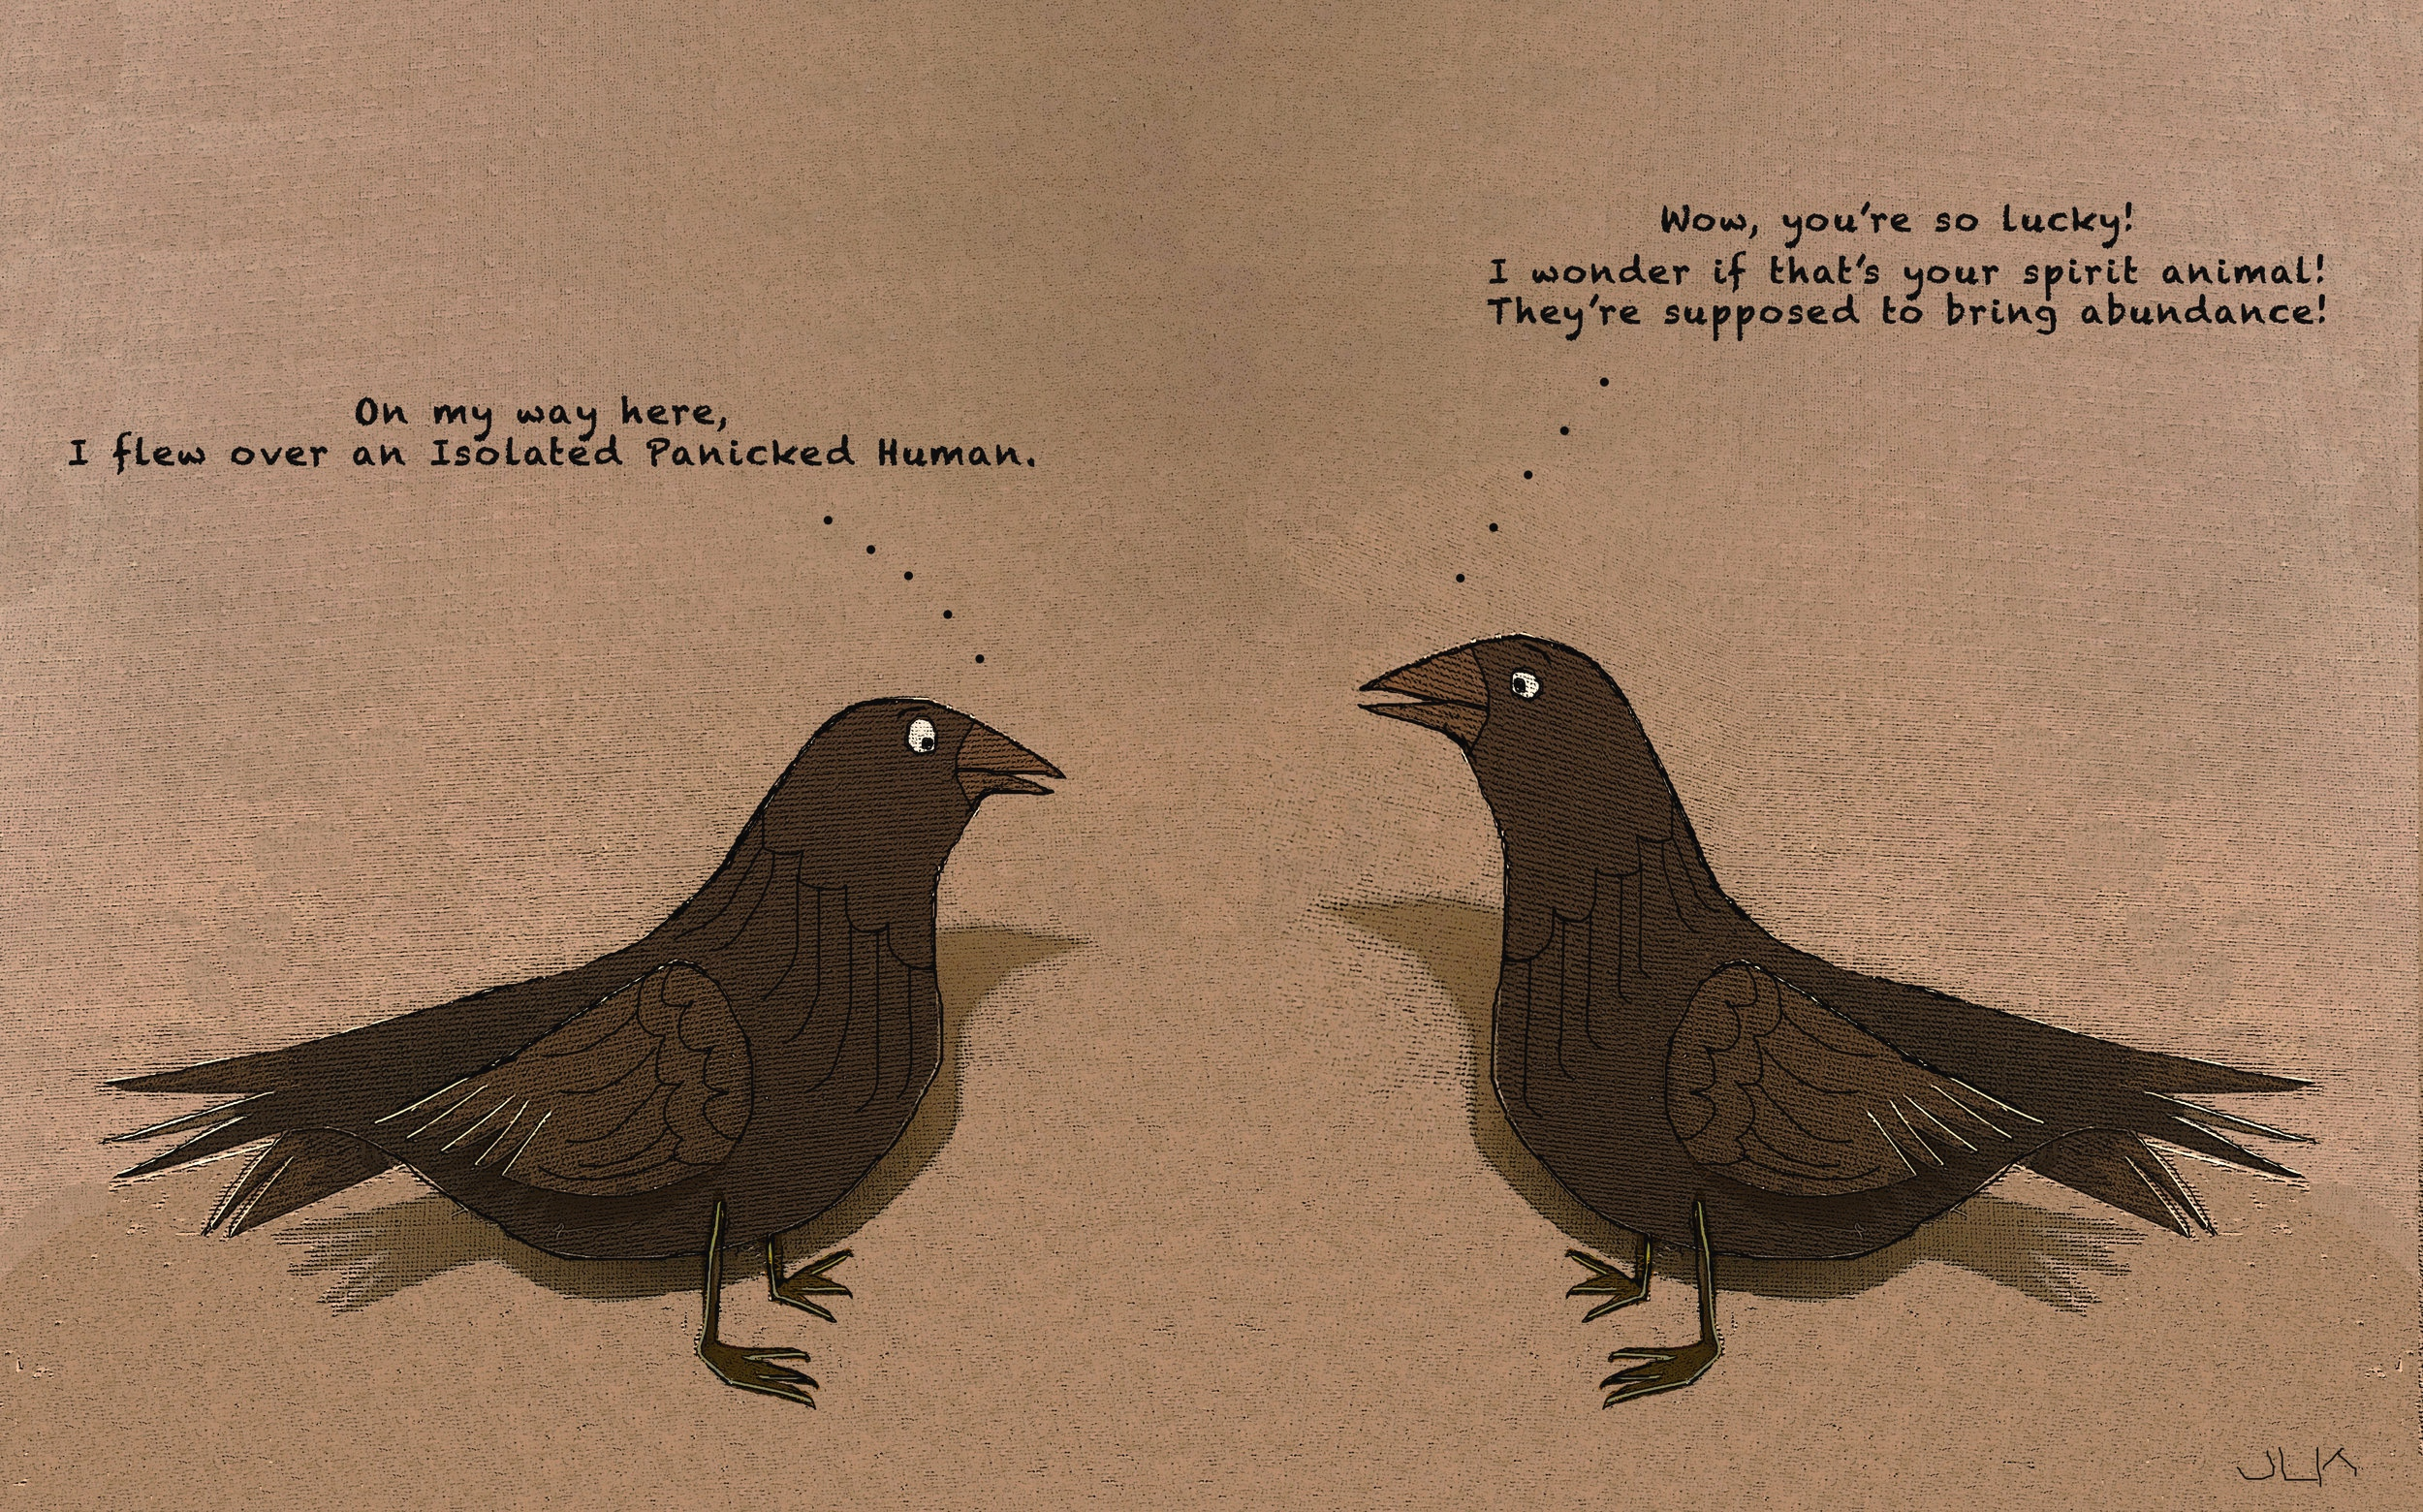 crows spirit animal text fixed capitolized.jpg